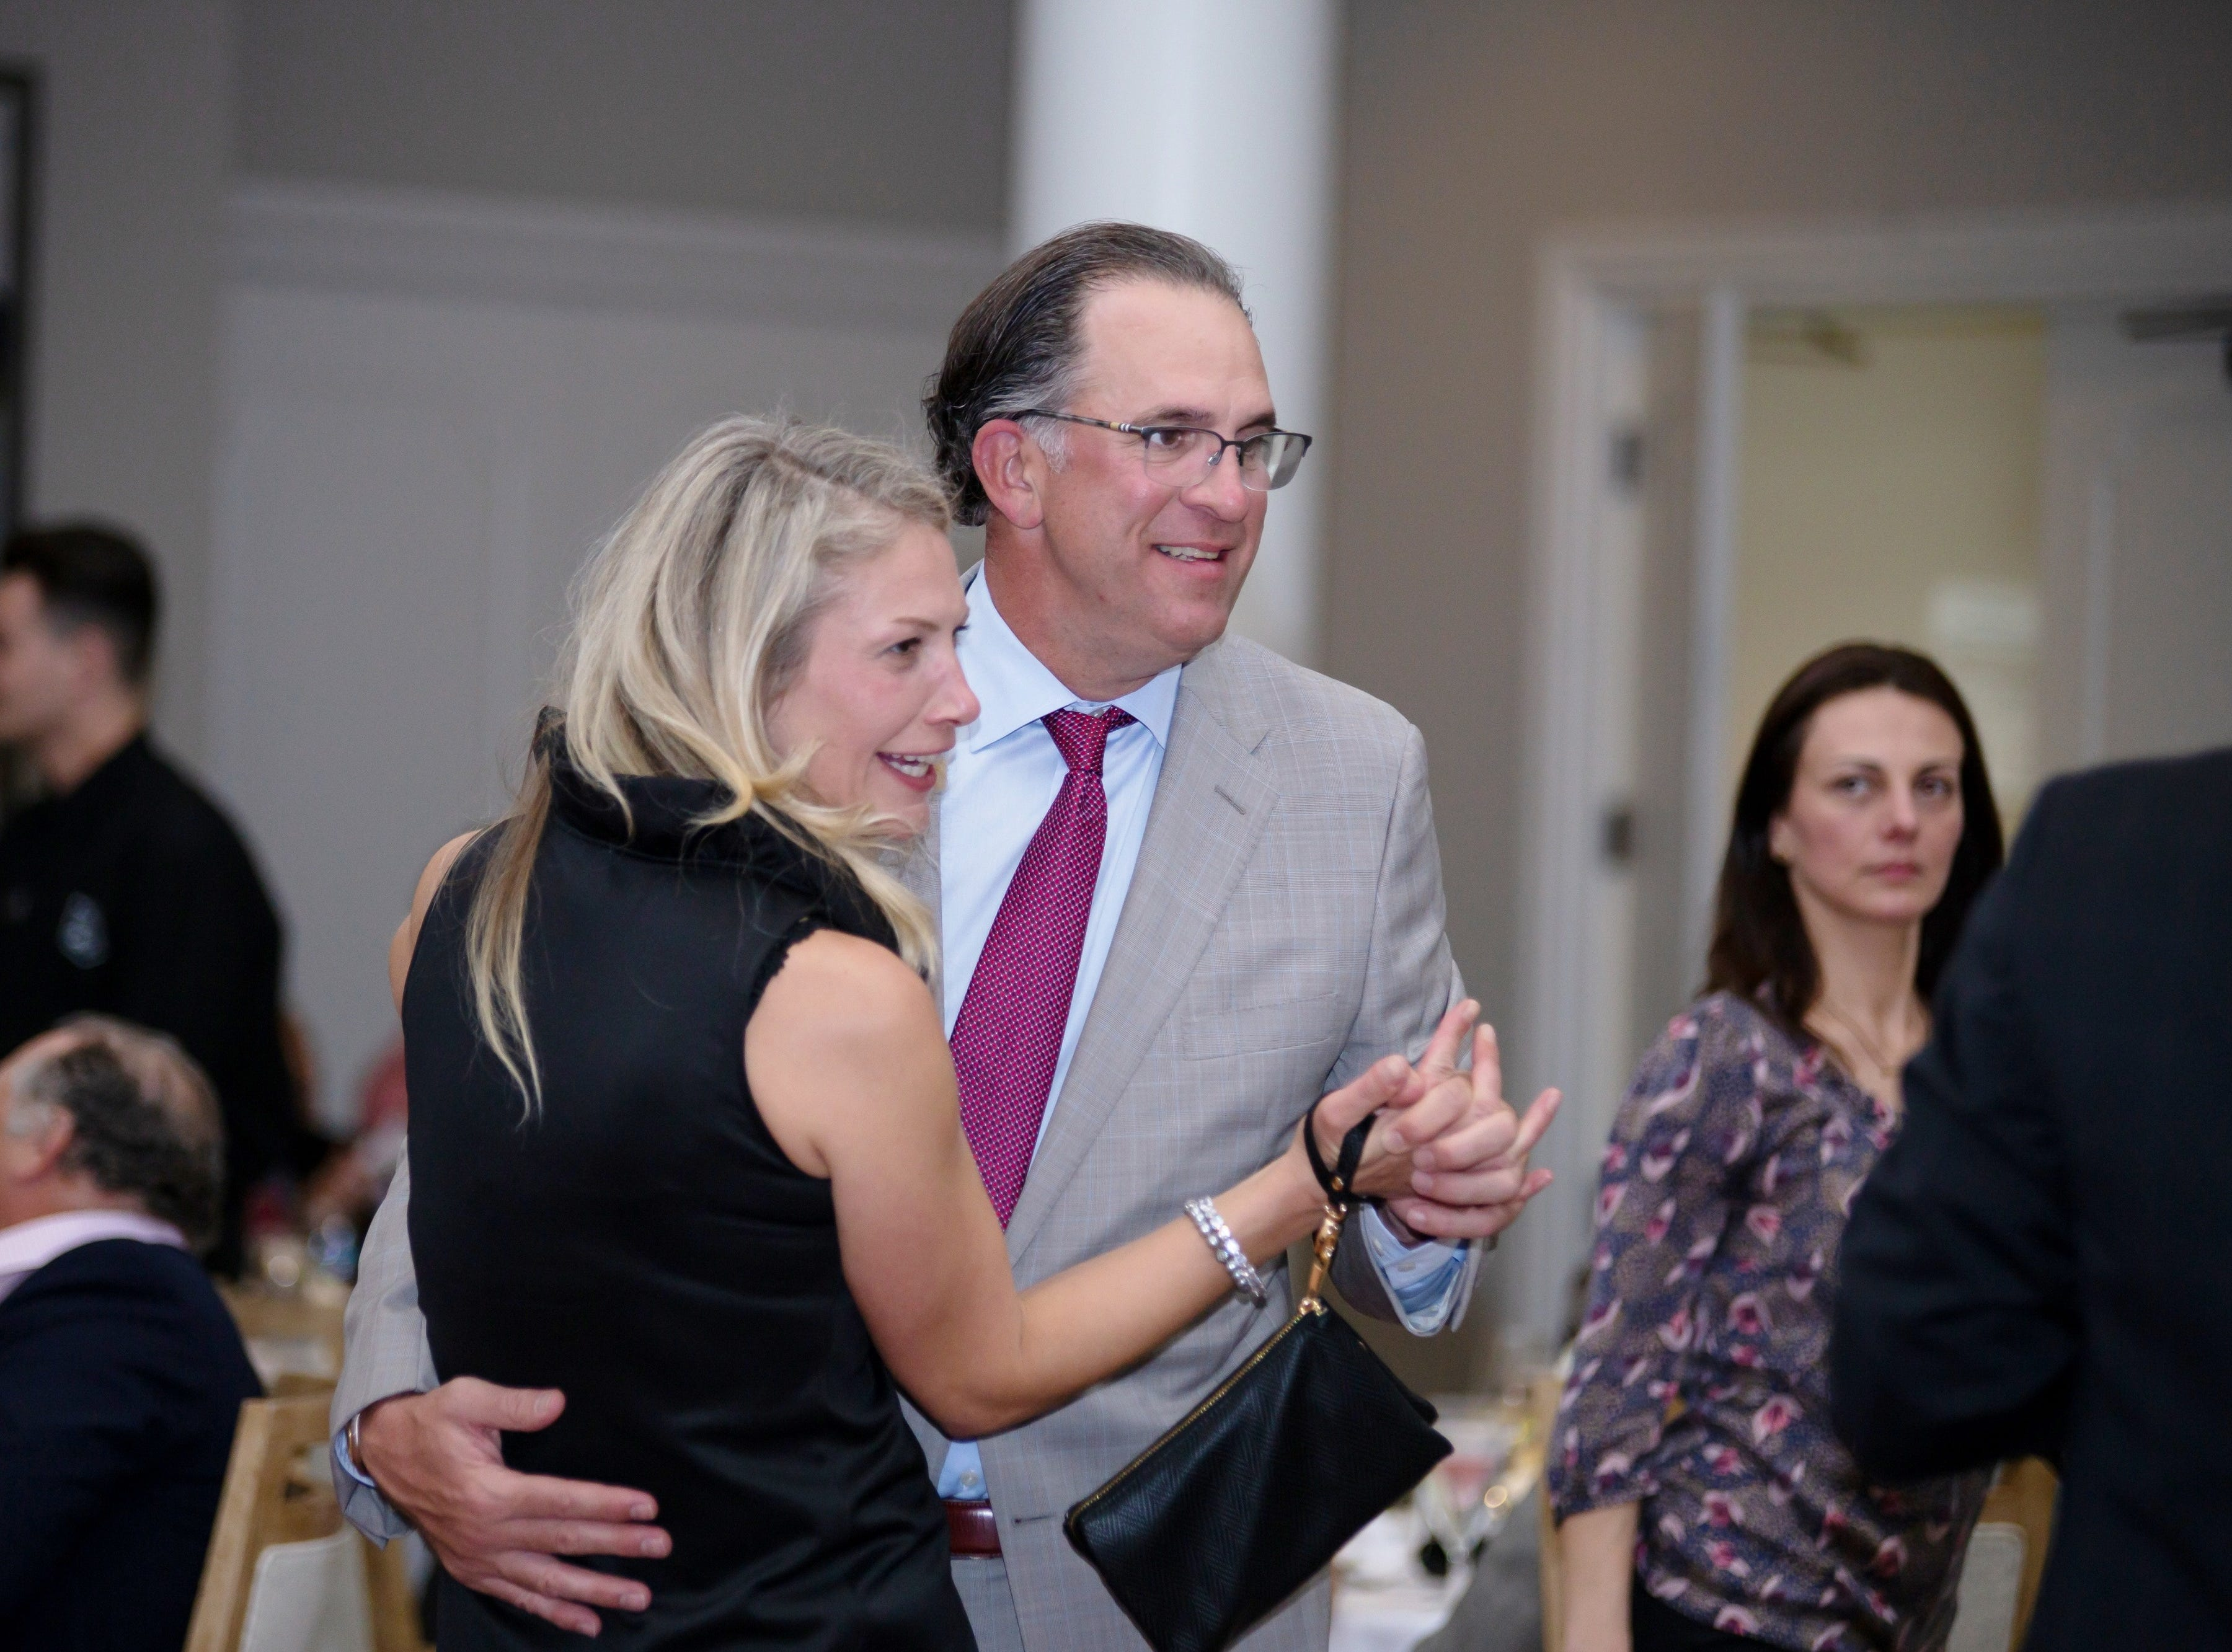 Anita and Dr. Jeffrey Miller share a dance at Jupiter Medical Center's 40th anniversary celebration at Frenchman's Reserve in Palm Beach Gardens.